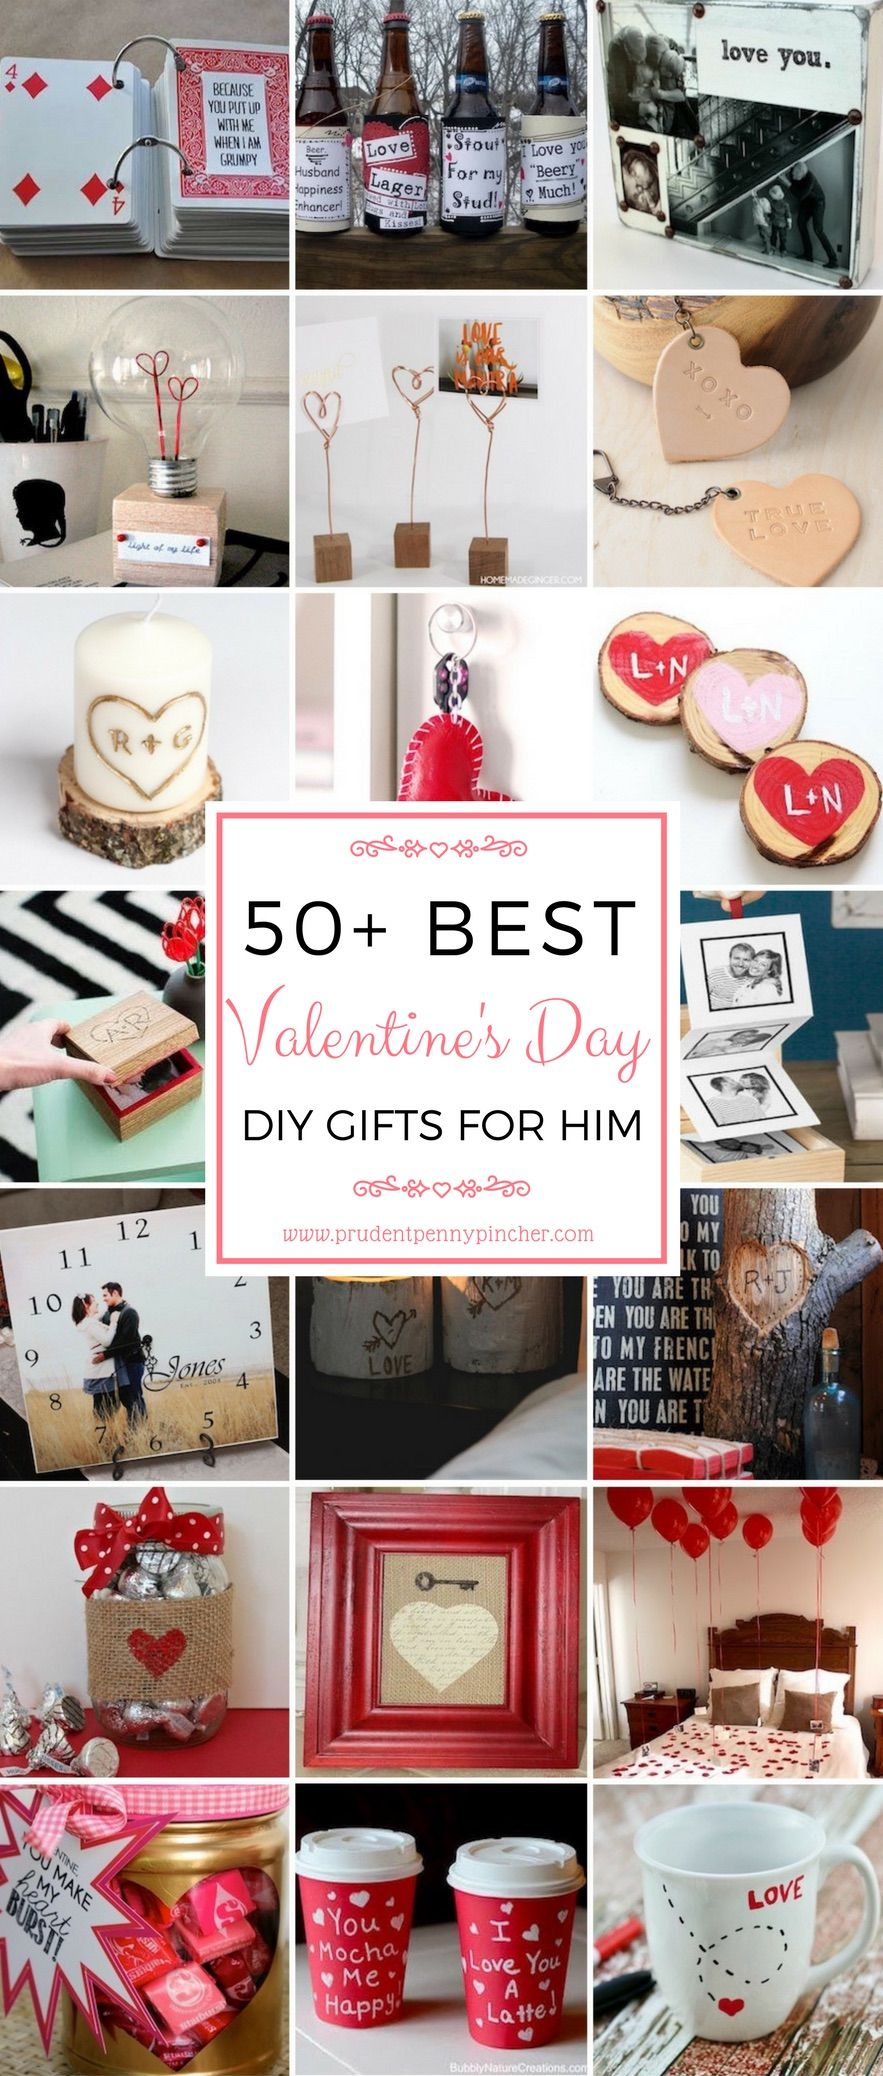 50 Diy Valentines Day Gifts For Him Diy Valentines Day Gifts For Him Diy Valentines Gifts Cheap Valentines Day Gifts